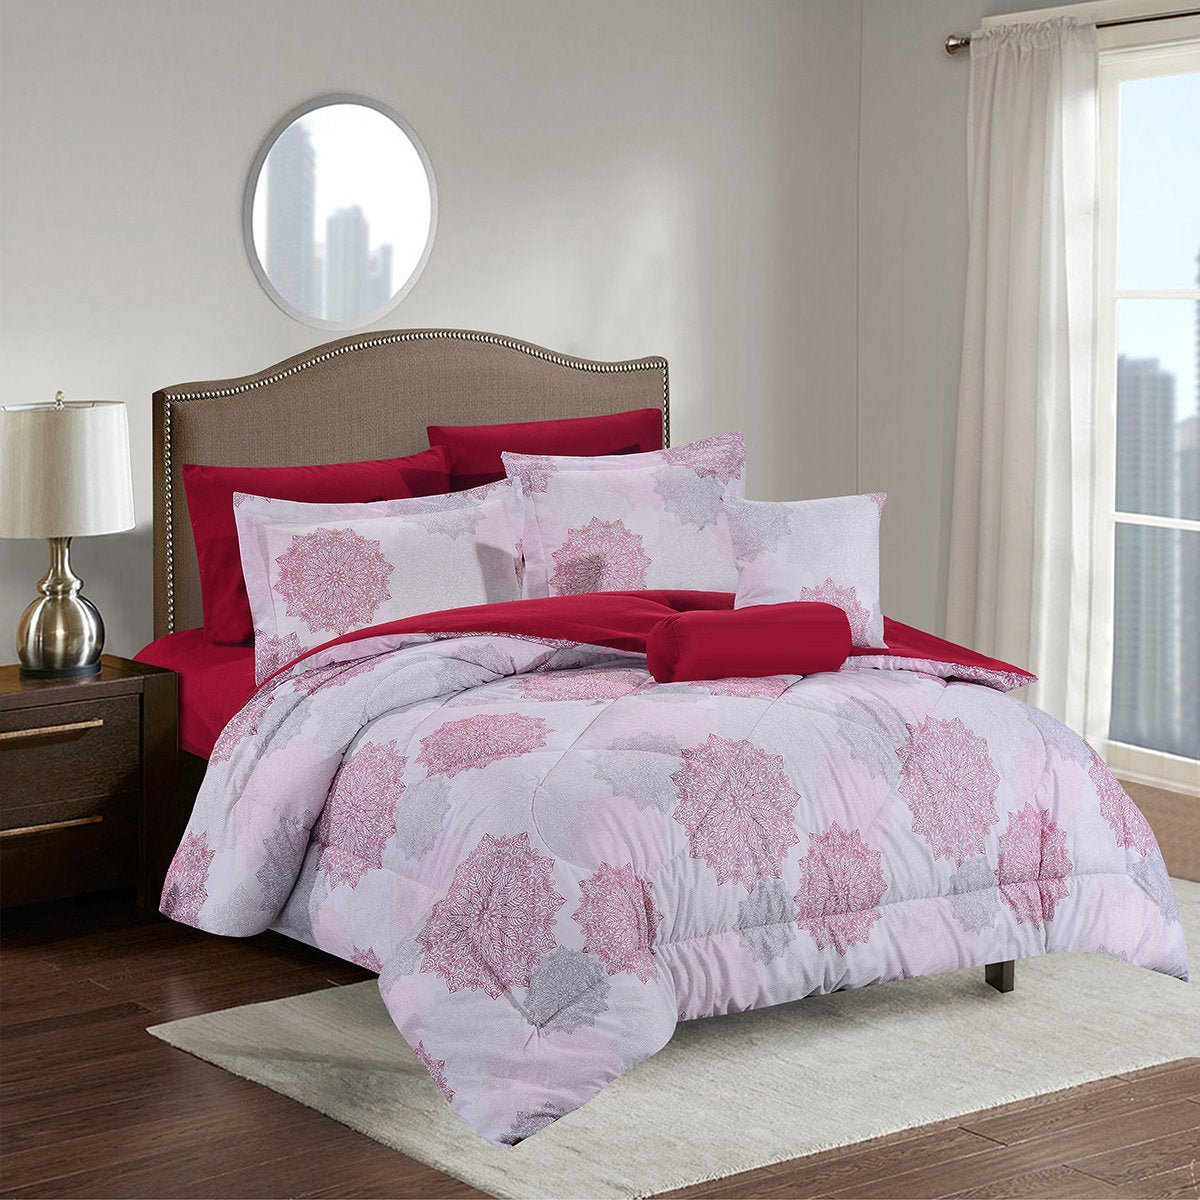 Comforter Sets Bed In A Bag Ultra Soft Microfiber Simcoe Luxury Comforter Set King Size 8 Piece Bed Sets Home